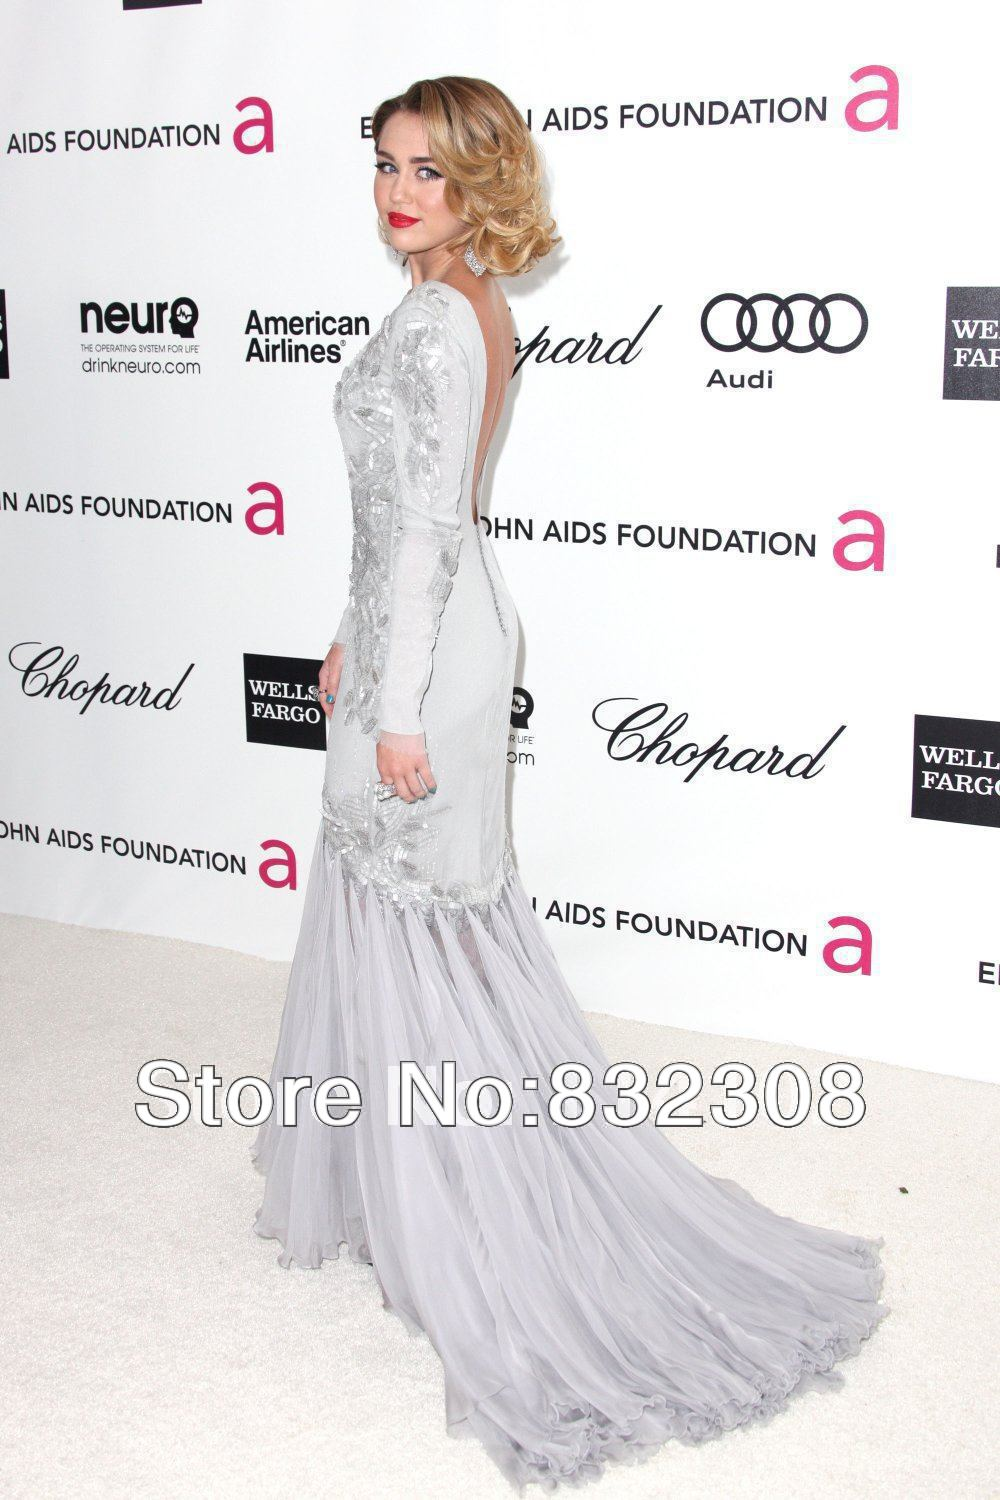 Miley Cyrus at the 20th Annual Elton John AIDS Foundation's Oscar Viewing Party Long Sleeve Celebrity Dress Evening Gown-in Celebrity-Inspired Dresses from Apparel & Accessories on Aliexpress.com